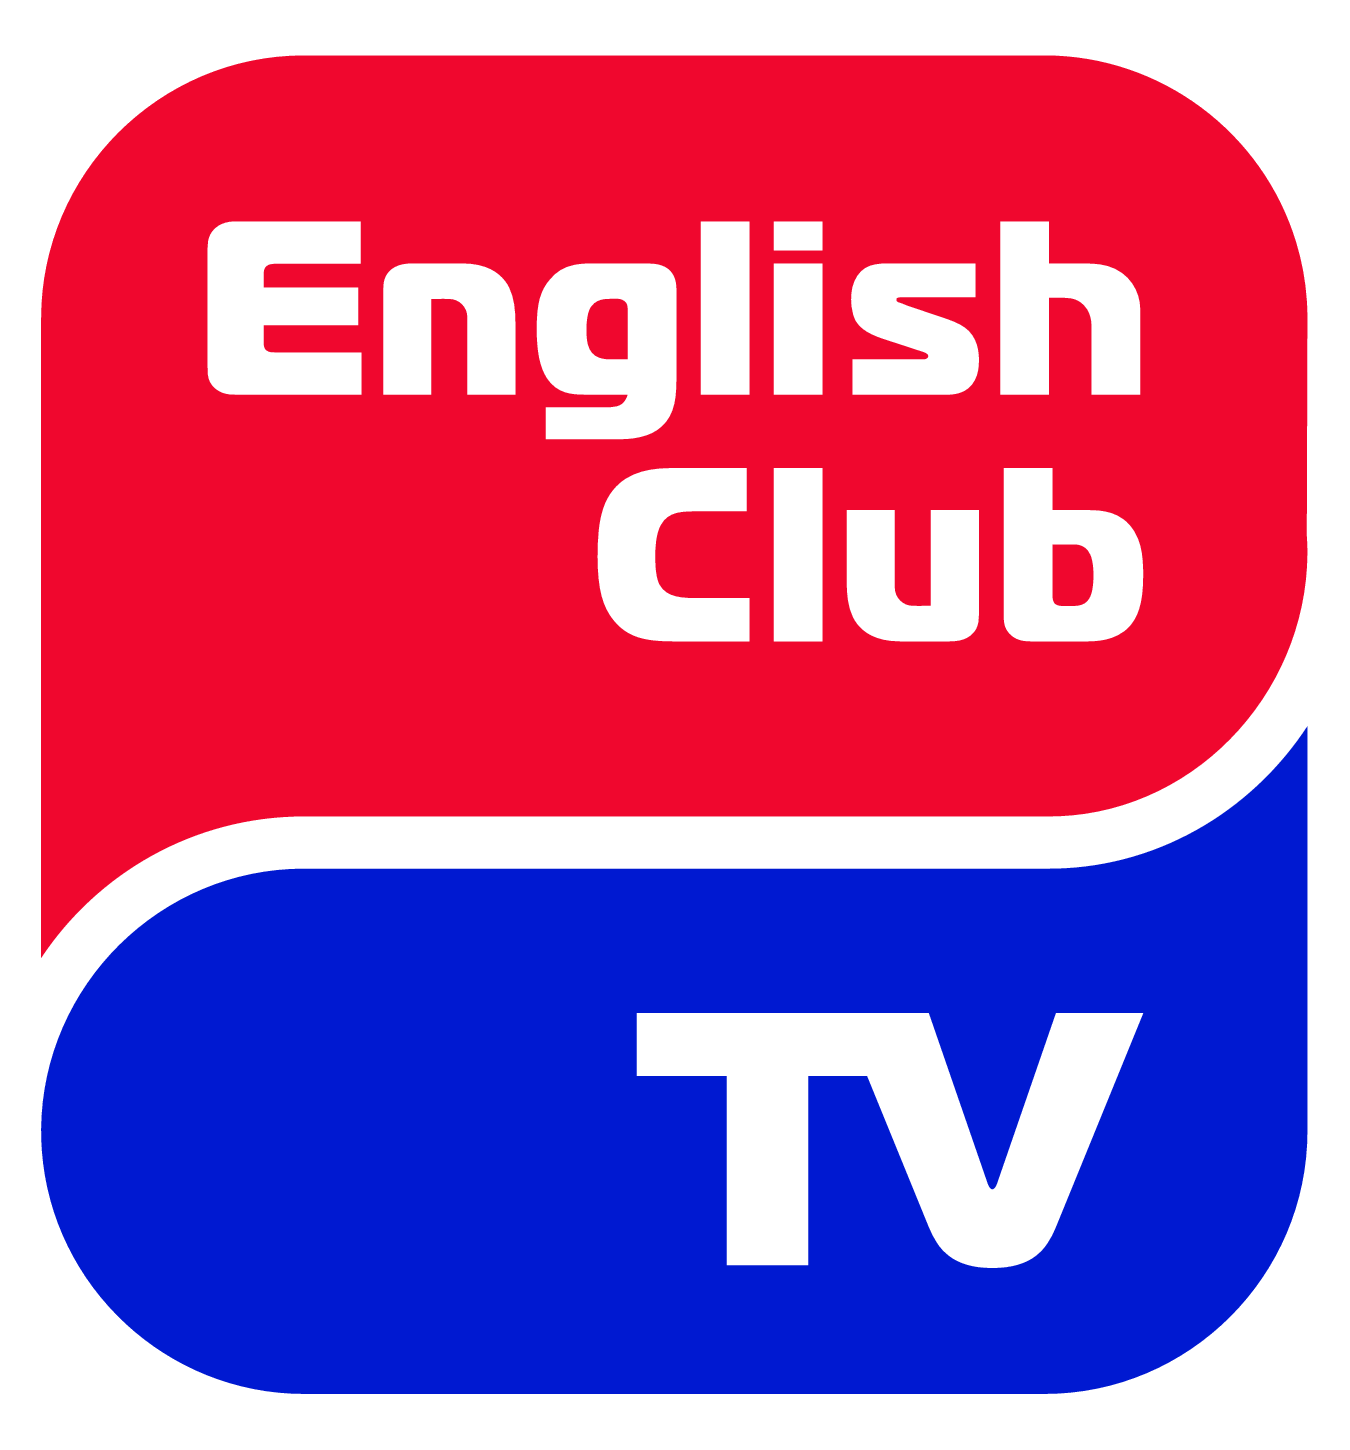 english tv club channel language subject ameba networks streaming serbia learn clipart center educational announces addition international 20logo